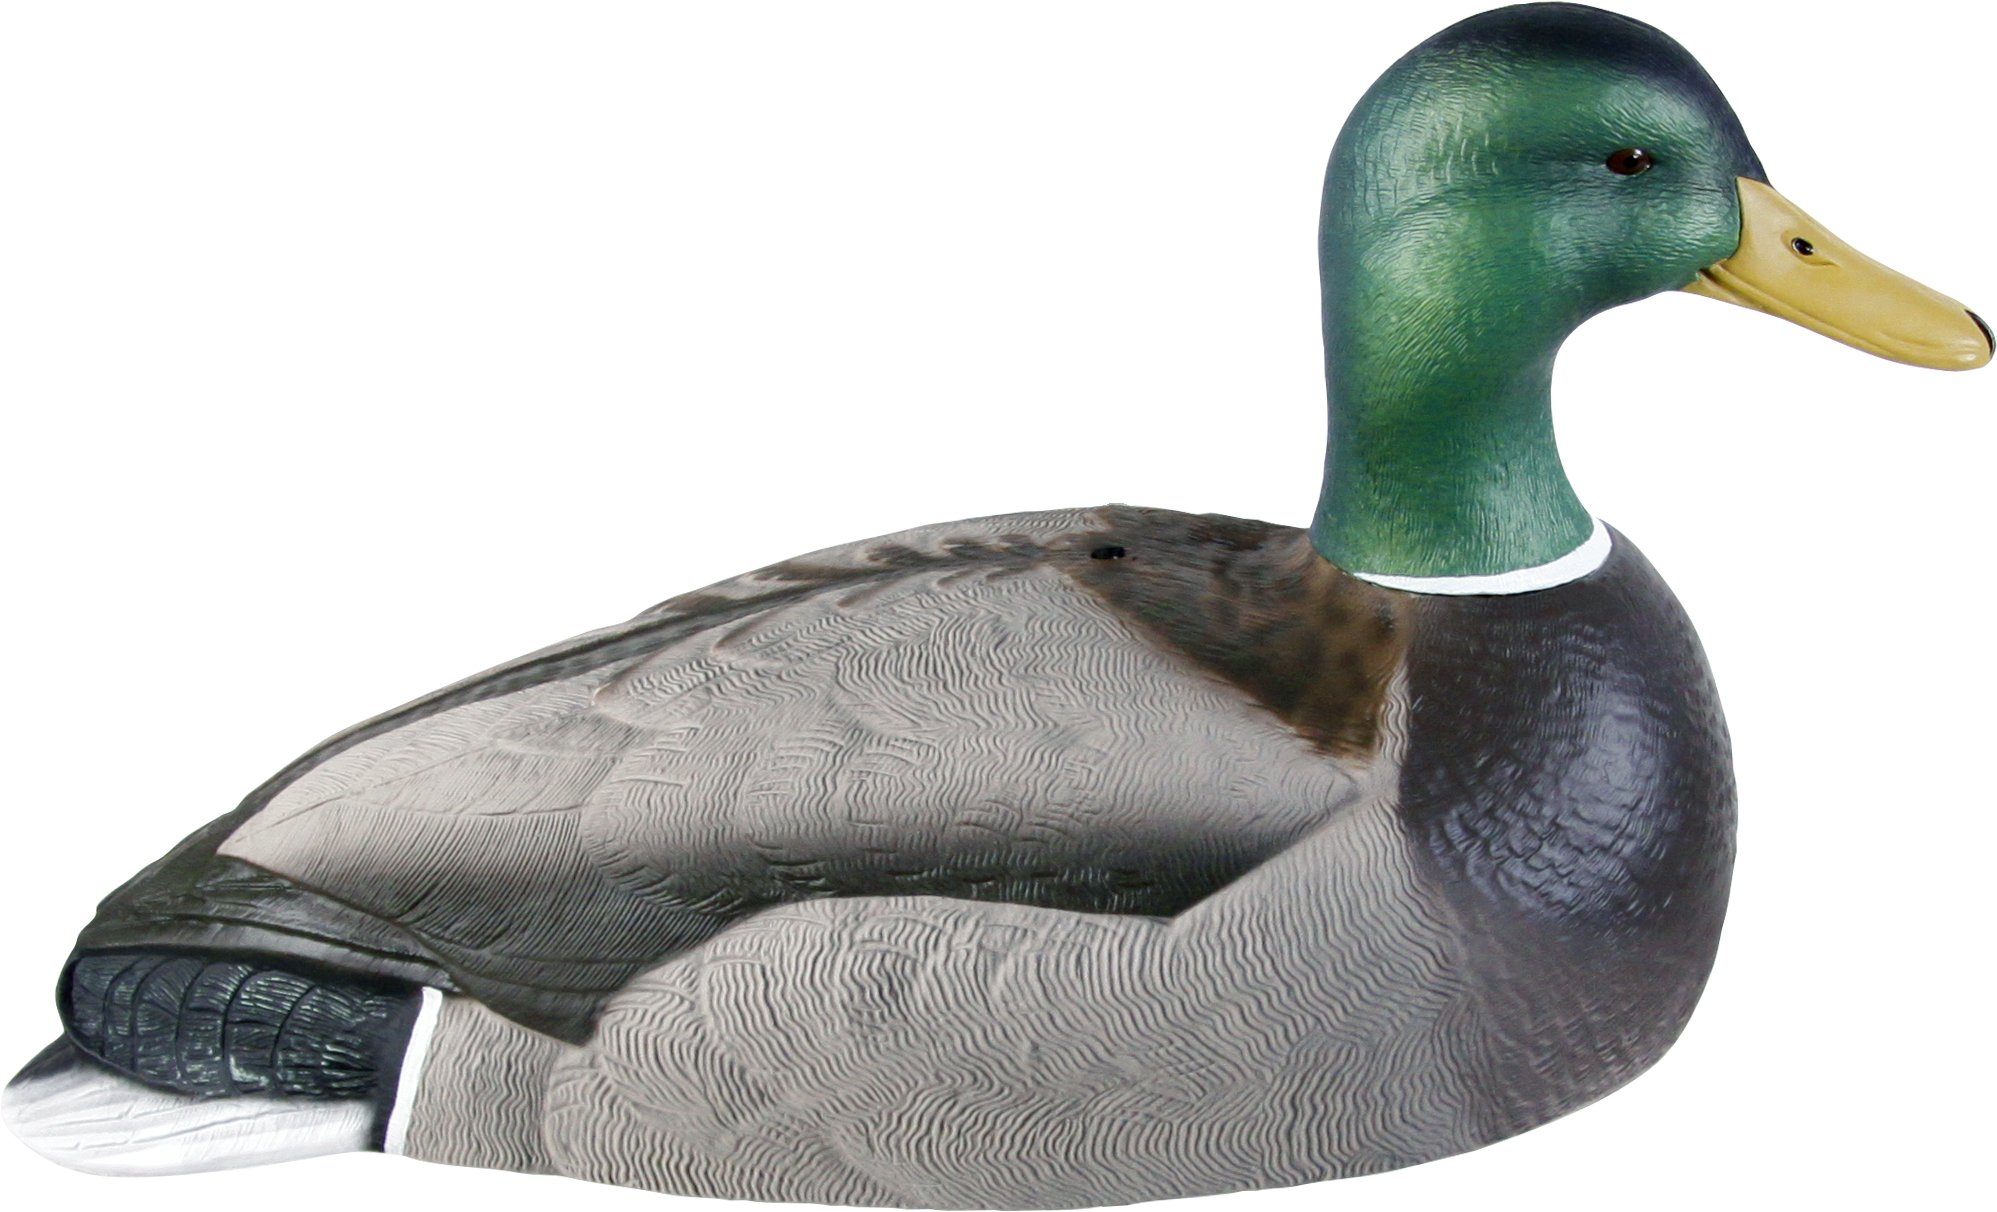 Avery GHG Over-Sized Mallard Shells with Motion Stakes - Dozen-Harvesters, AV-70167 by GreenHead Gear (Image #9)